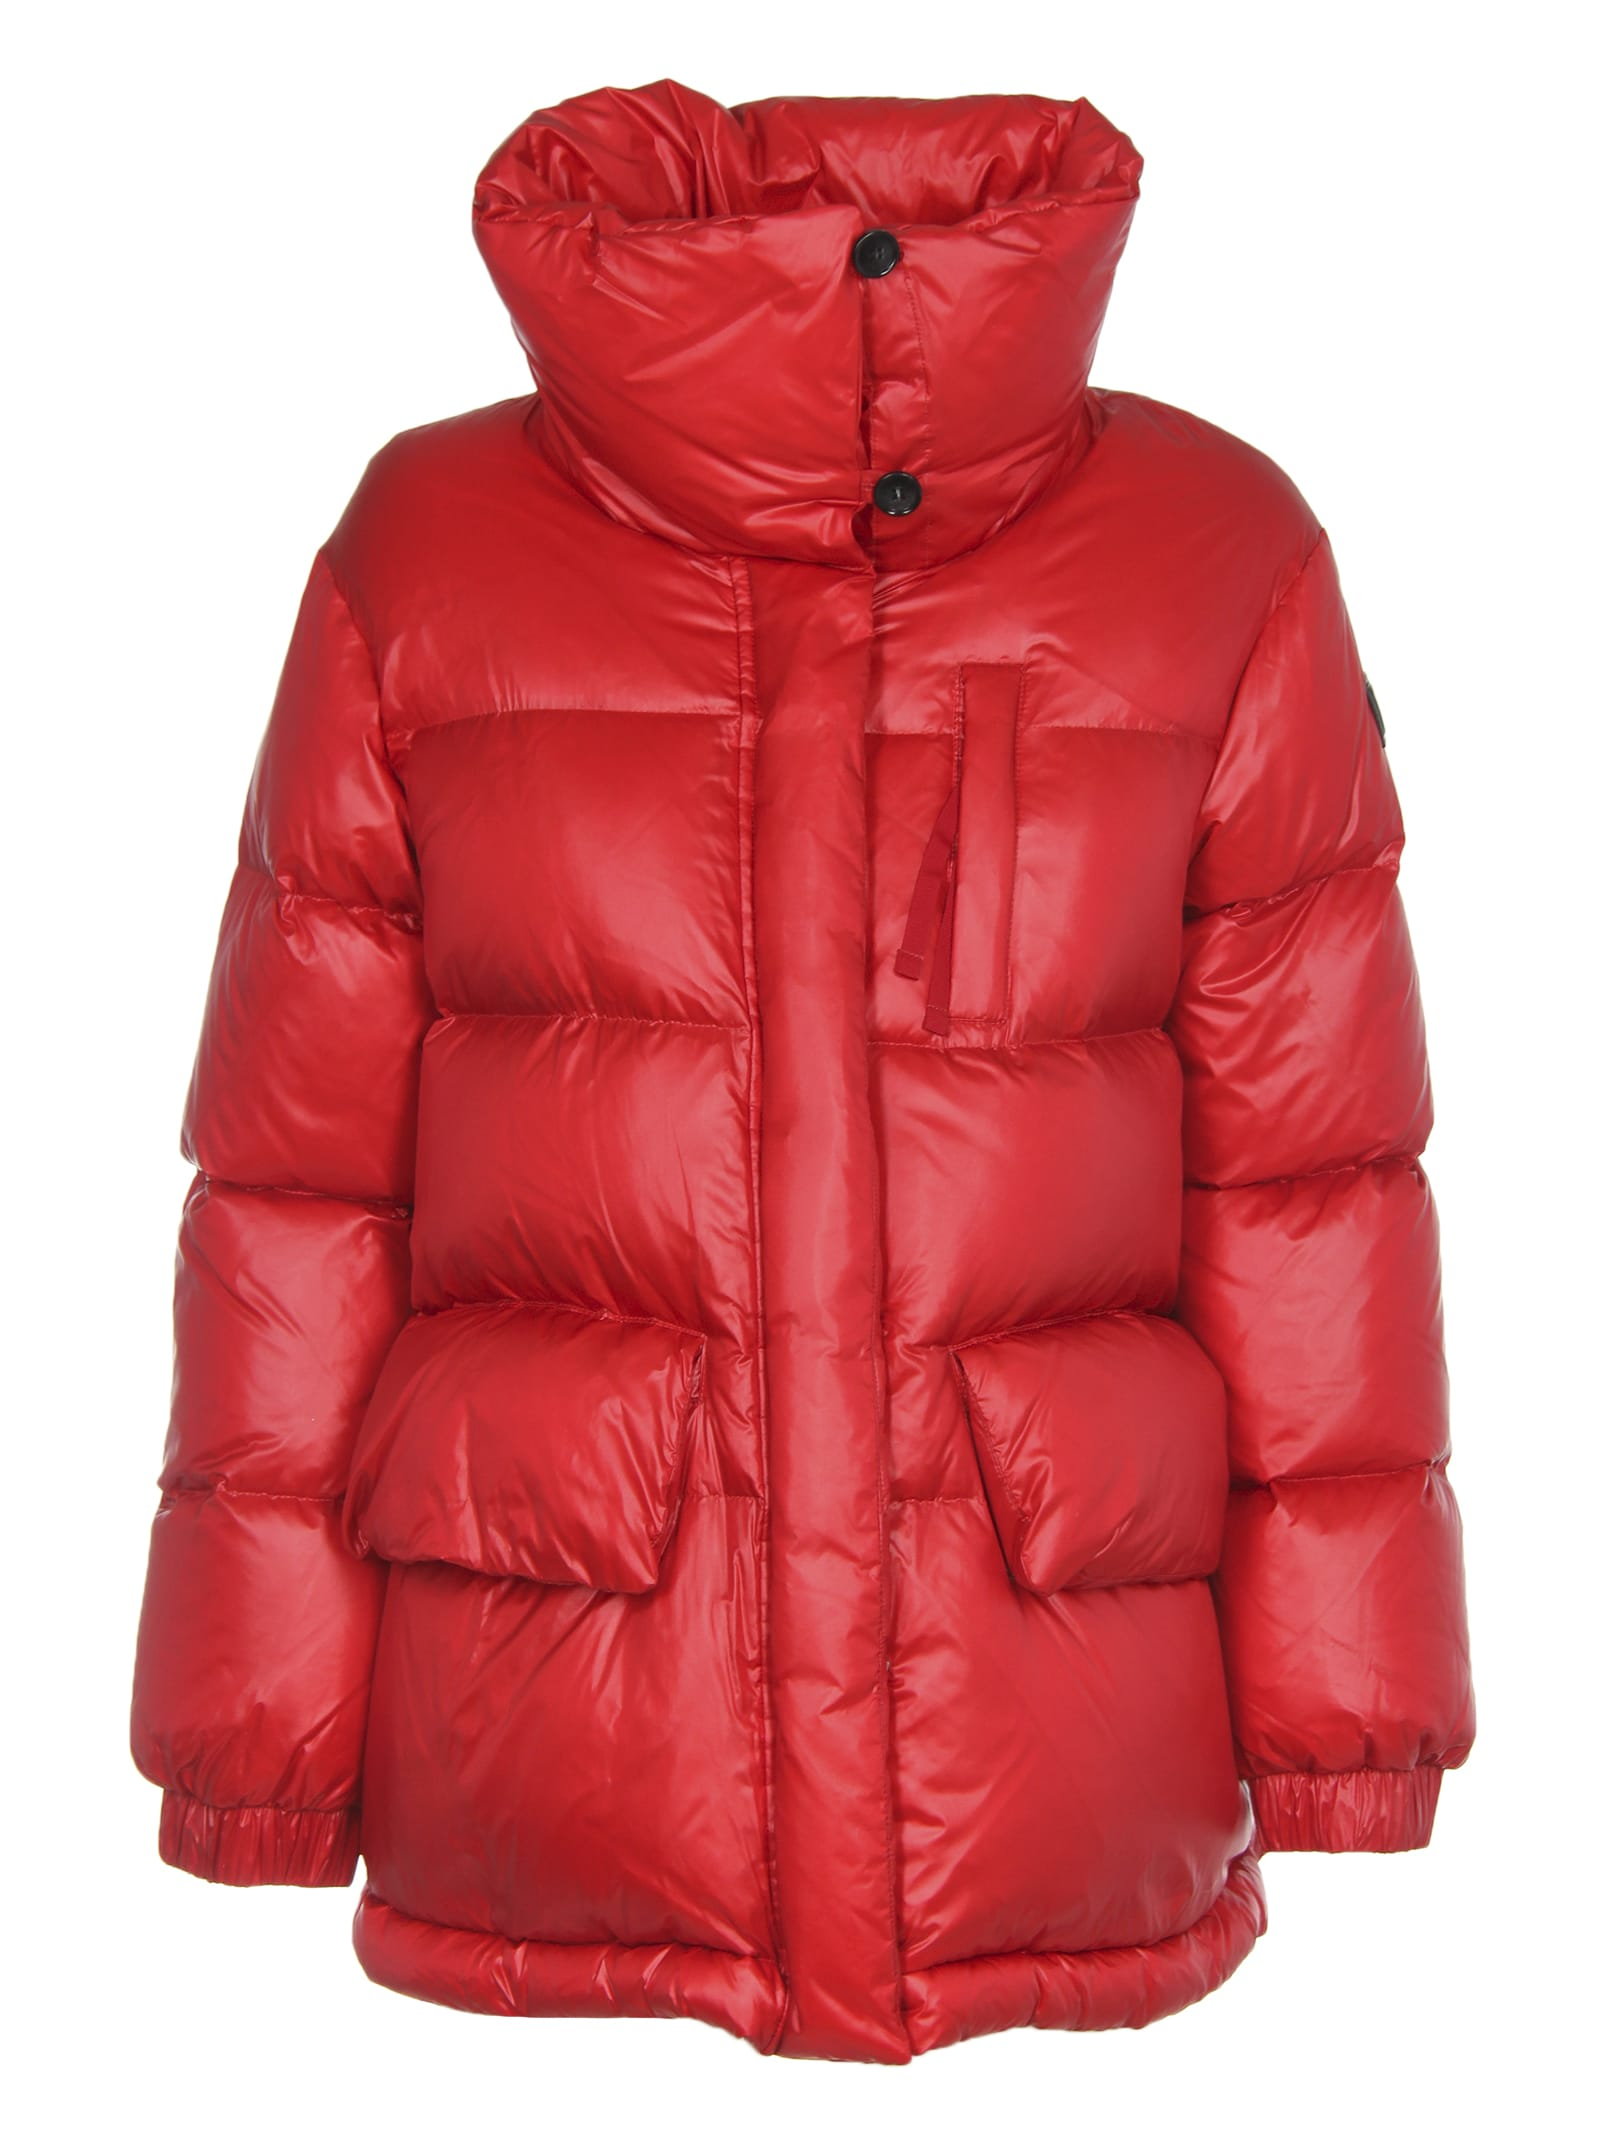 Woolrich Ws Alquippa Puffy Red Jacket